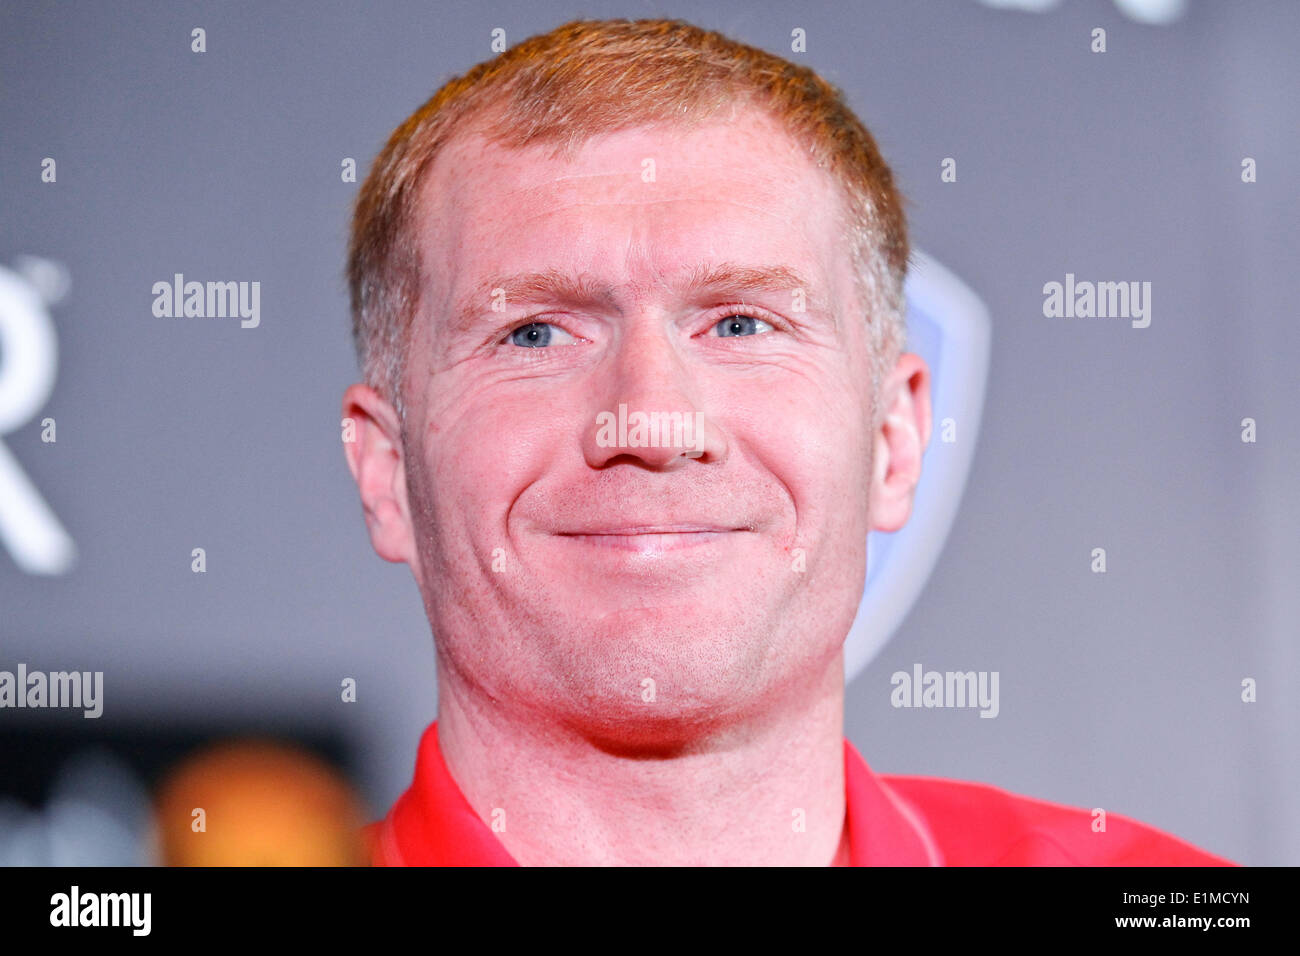 Manila, Philippines. 6th June, 2014. Makati, Philippines - Former Manchester United player Paul Scholes smiles for the media during a press conference in Makati on June 6, 2014. Together with Andy Cole, they will play an exhibition game against local amatuer and professional football players. Credit:  Mark Cristino/NurPhoto/ZUMAPRESS.com/Alamy Live News - Stock Image